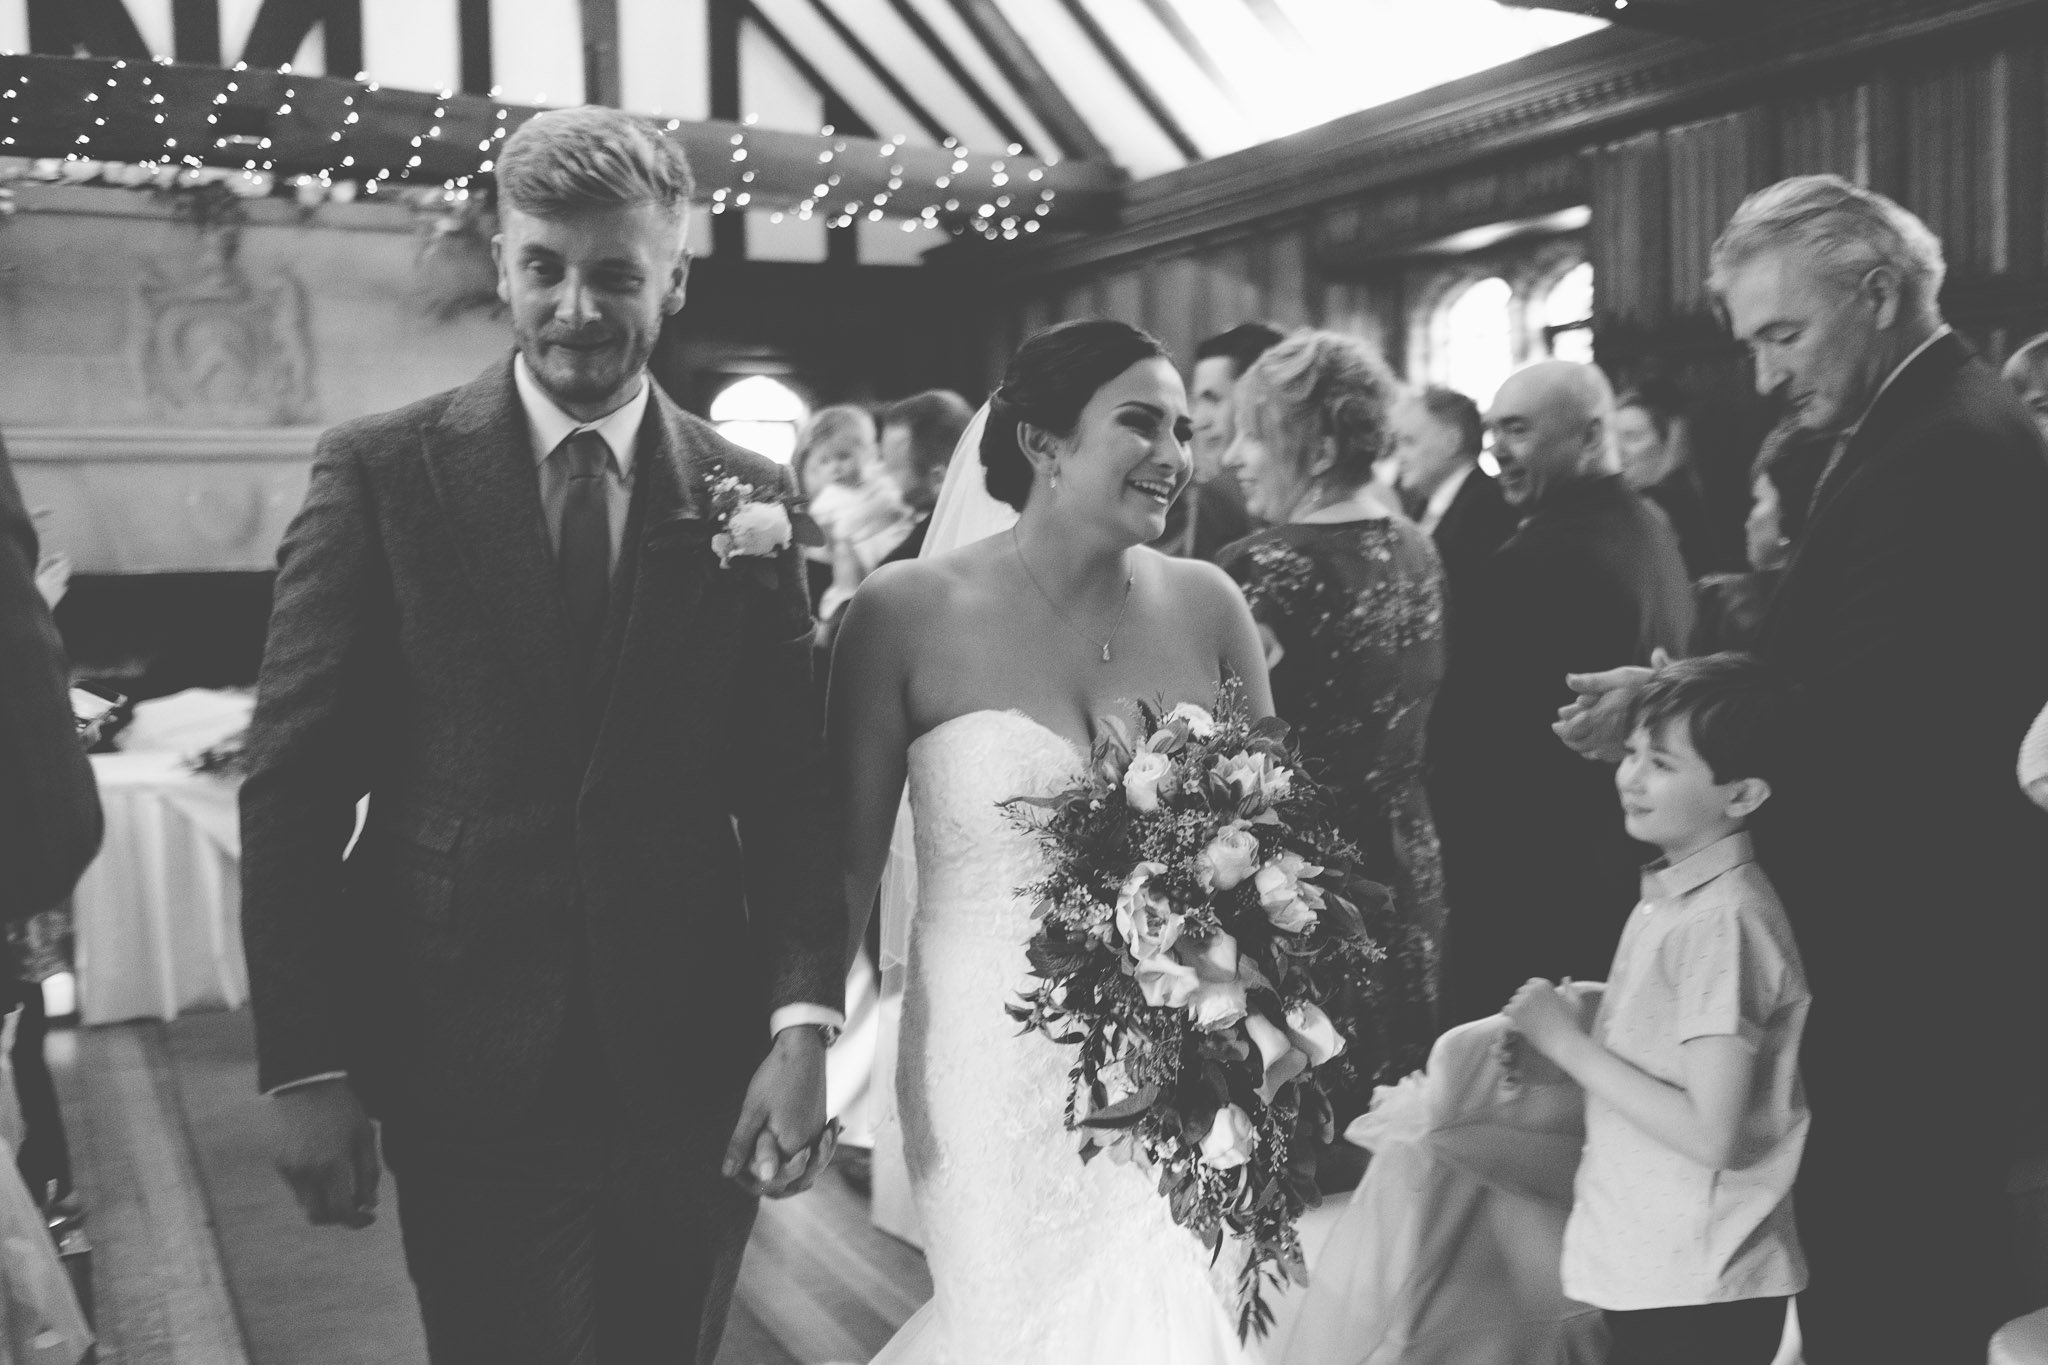 Just married bride and groom leave after ceremony at Leez Priory wedding